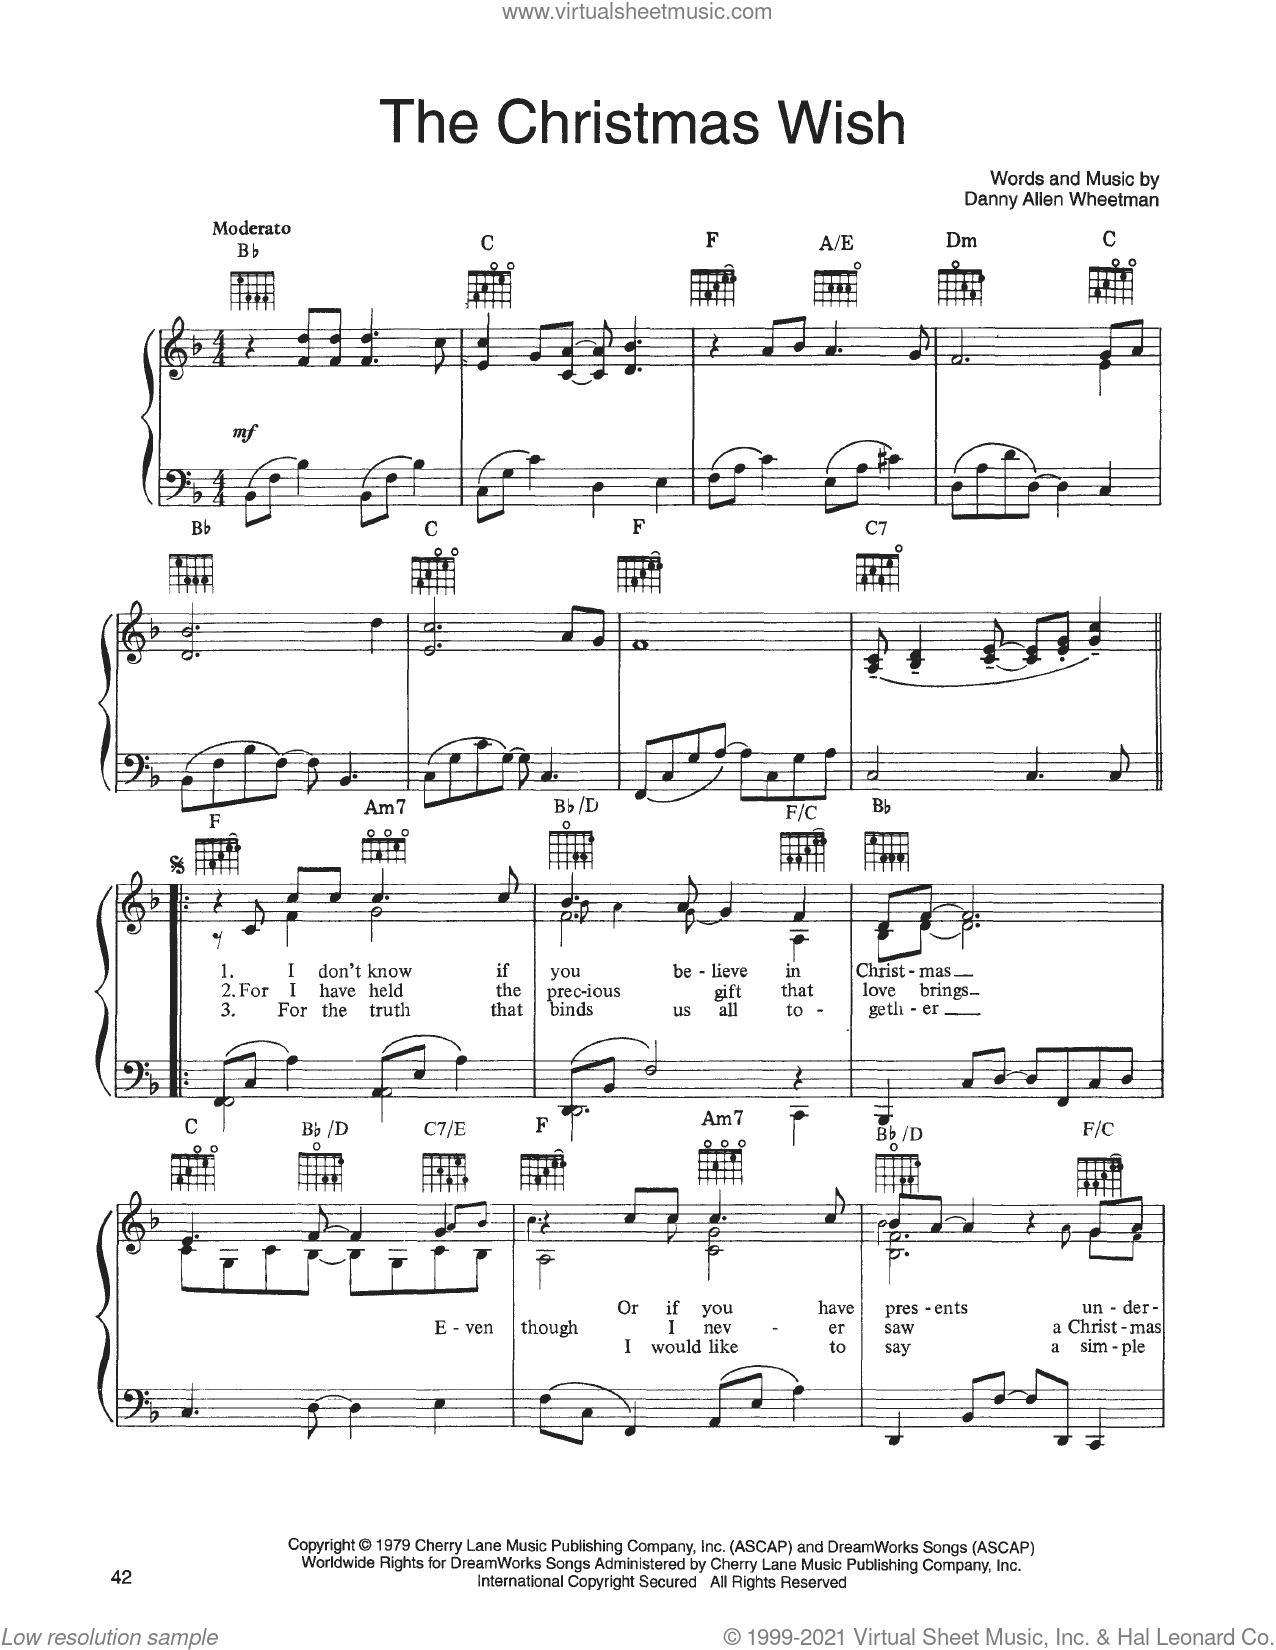 The Christmas Wish (from A Christmas Together) sheet music for voice, piano or guitar by John Denver and The Muppets and Danny Allen Wheetman, intermediate skill level